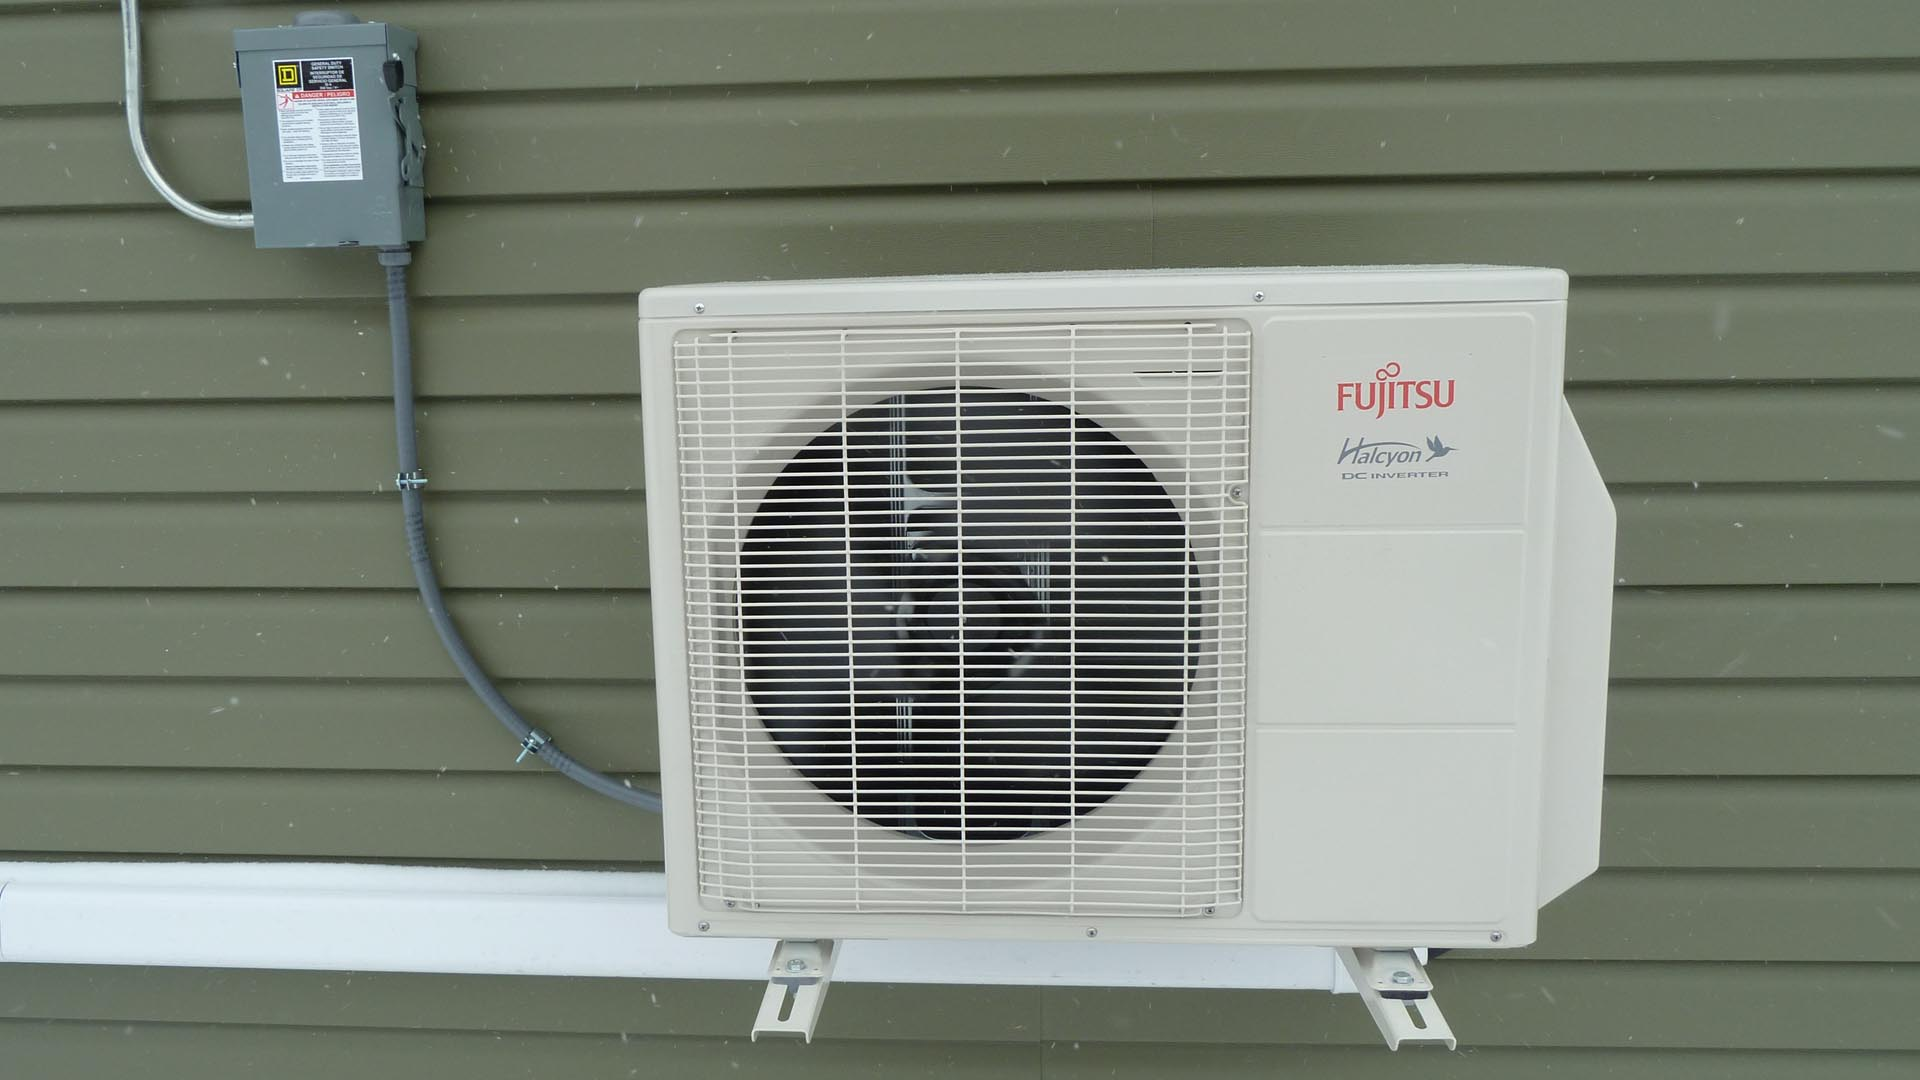 fujitsu 15rls2 heat pump installed my initial thoughts quadomated rh quadomated com fujitsu 5kw split system manual fujitsu multi split system manual